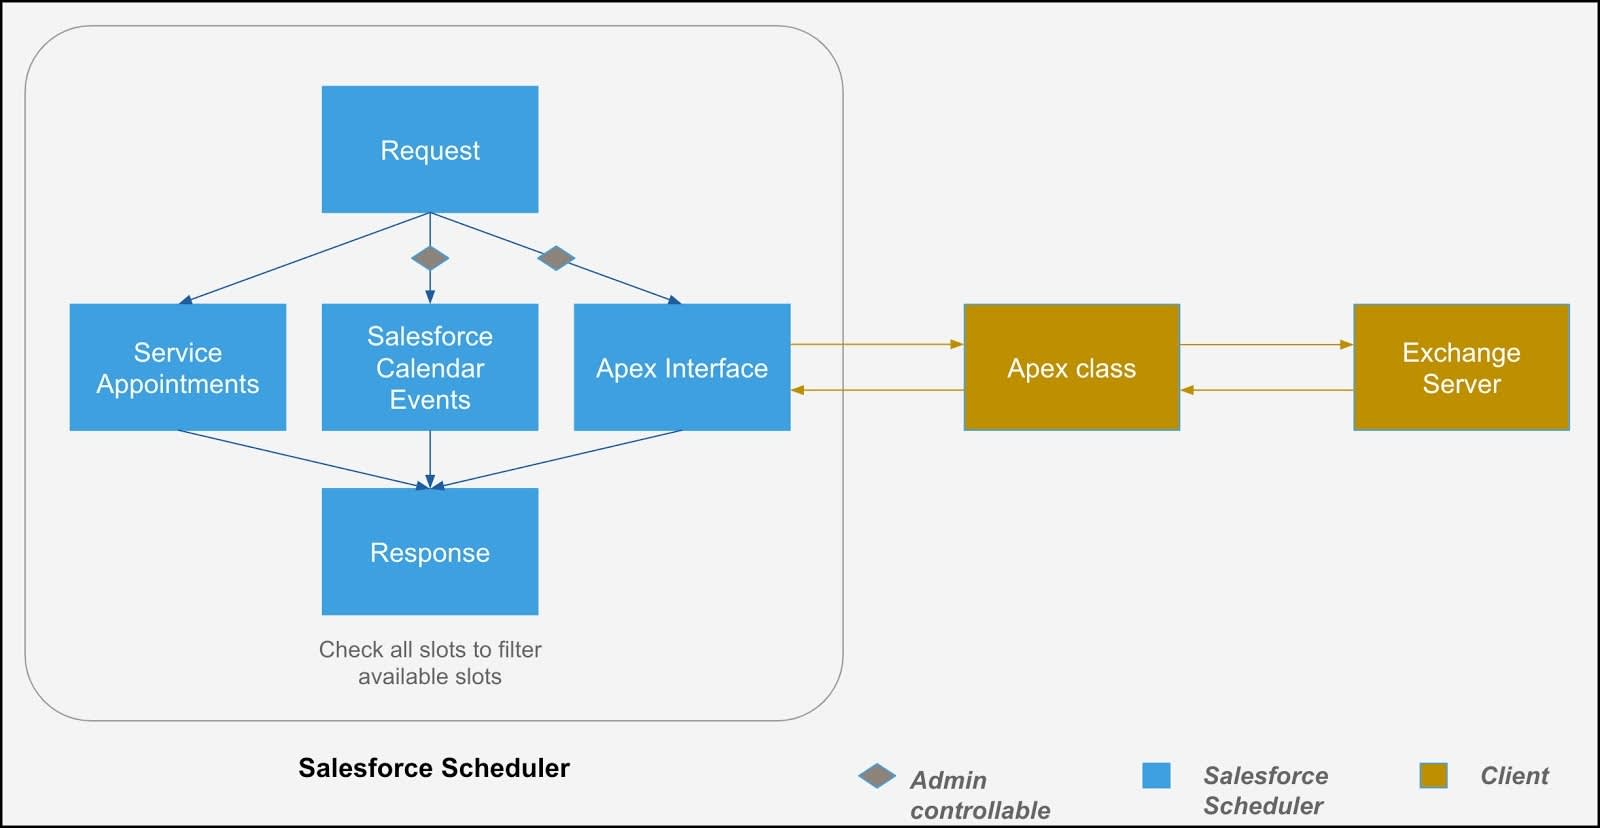 An illustration of the flow of data from an external mail server to Salesforce Scheduler via Apex class.